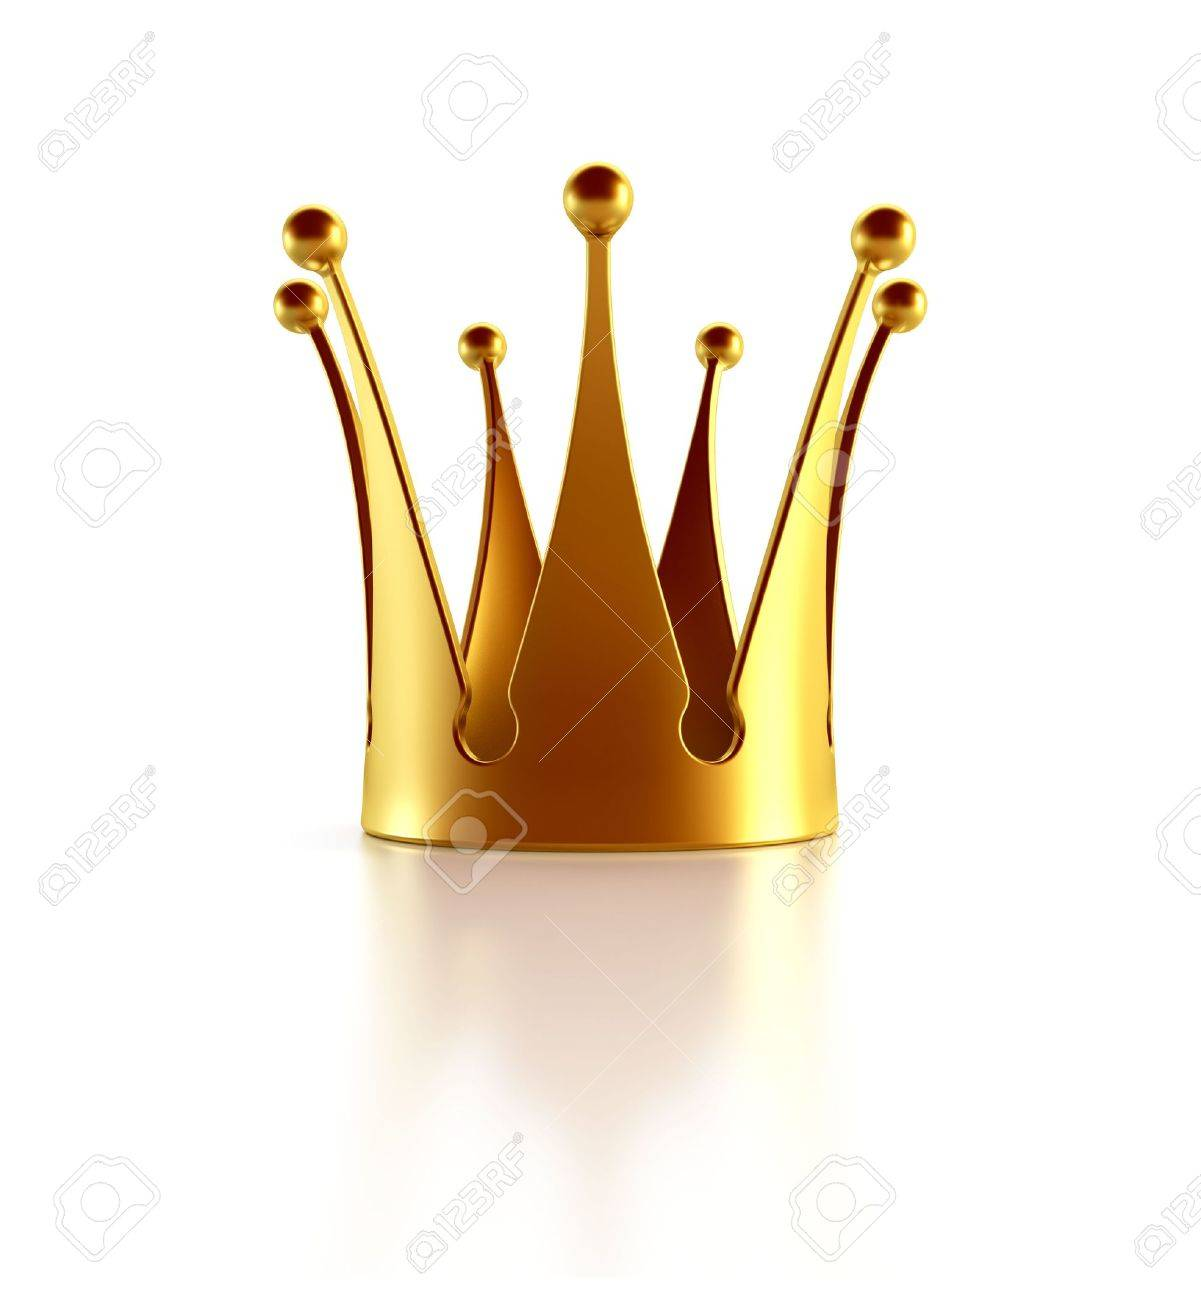 Isolated golden crown 3d rendering Stock Photo - 5511417